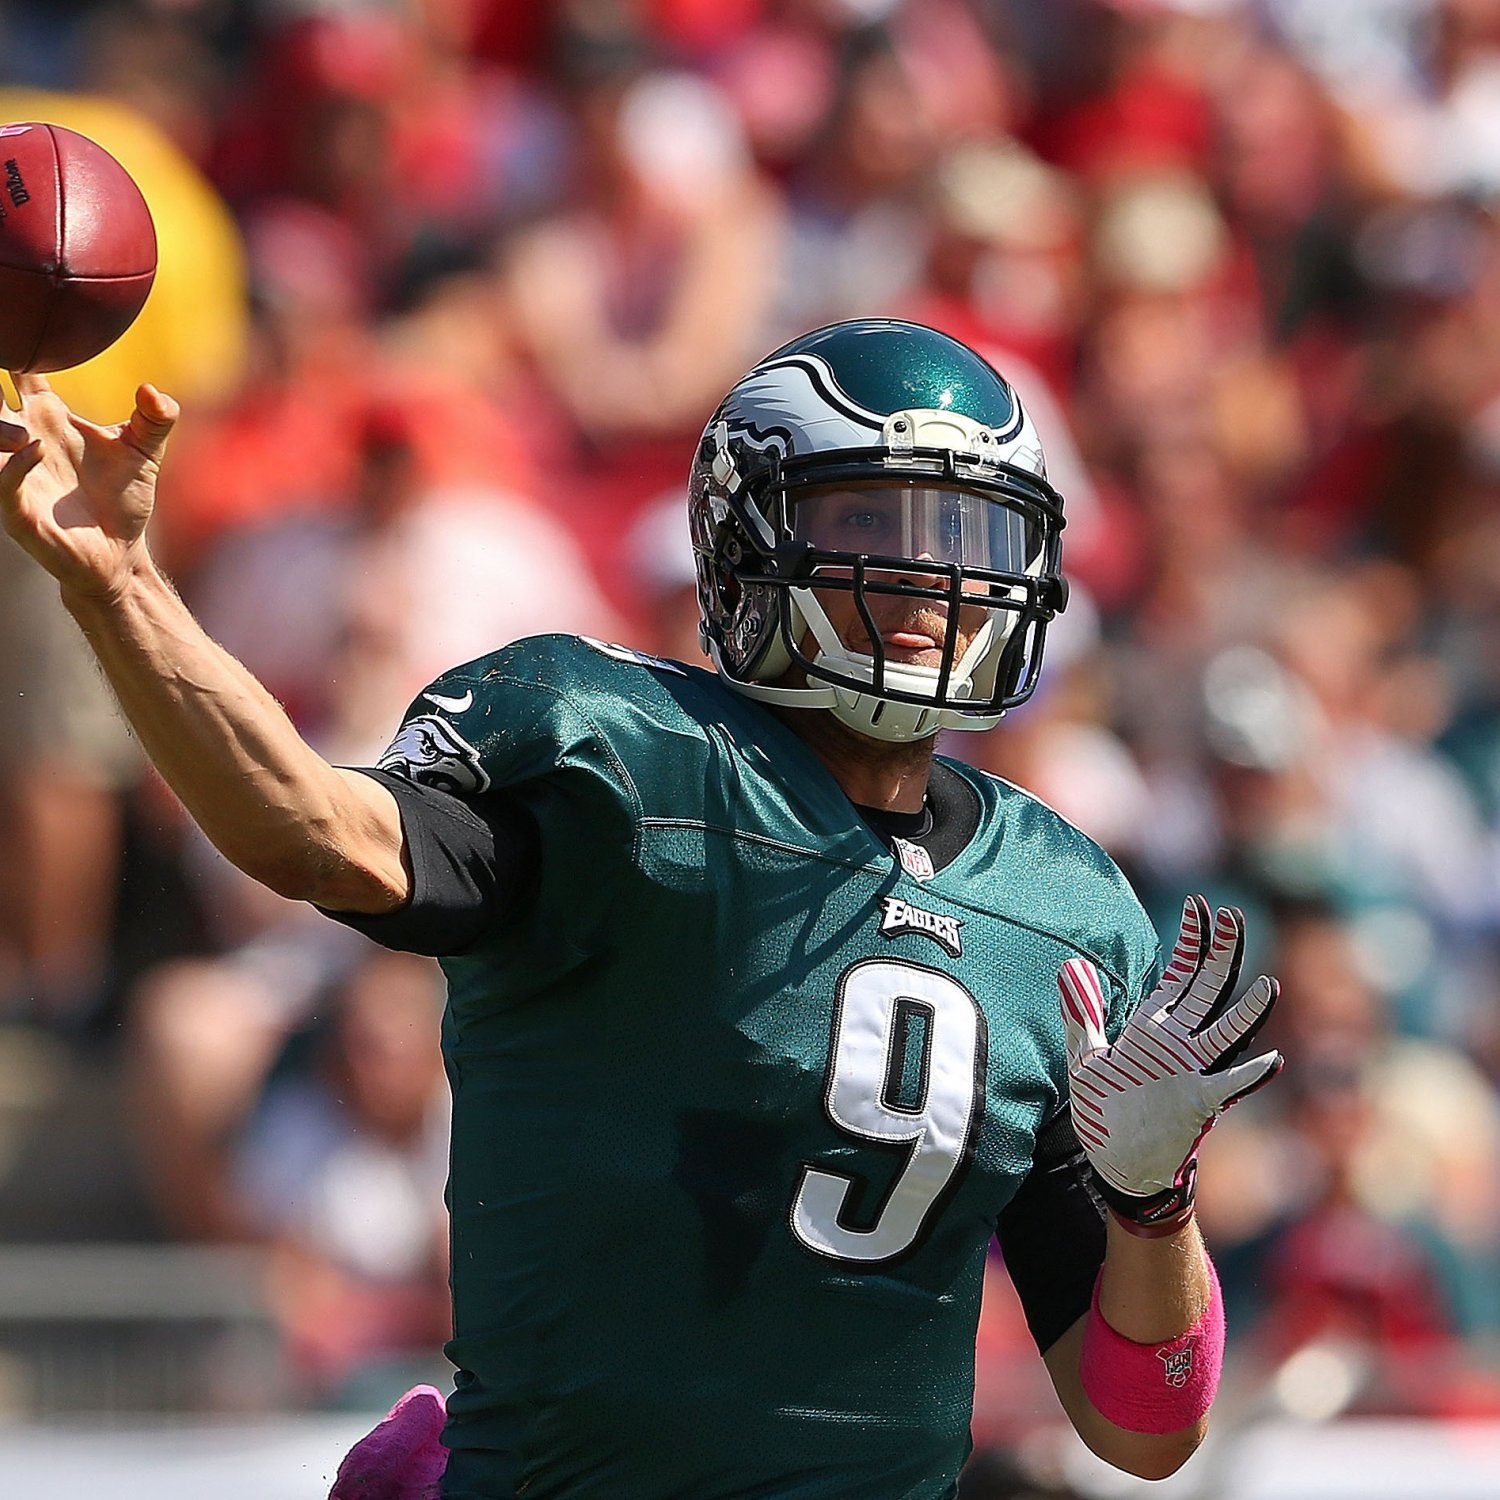 Should Philadelphia Eagles Make Nick Foles The Permanent